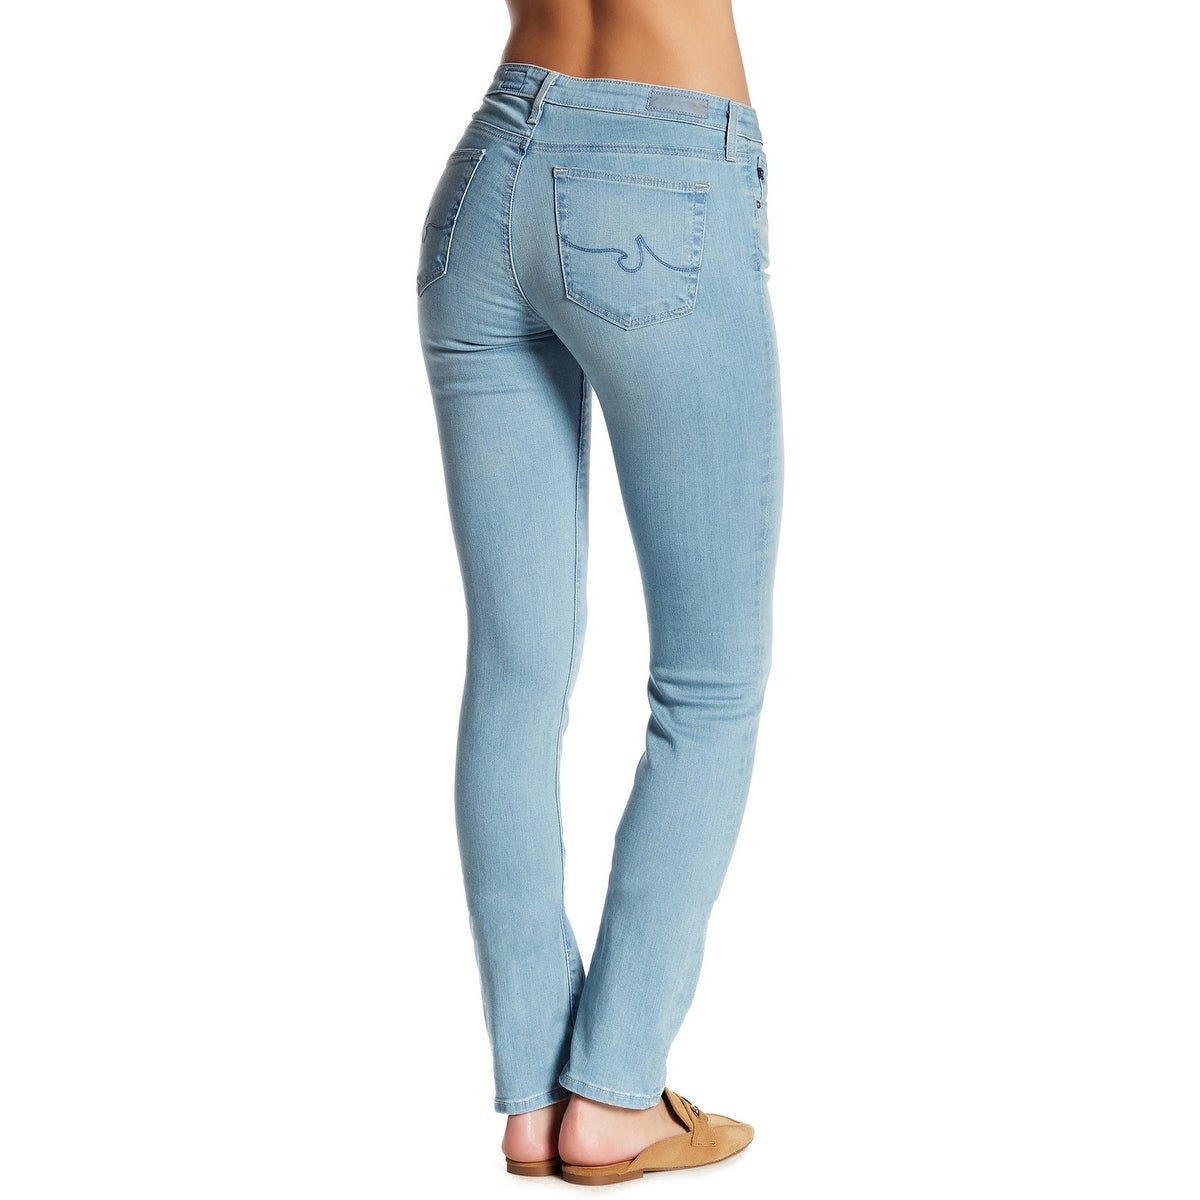 ab1a6e1224c2 Shop AG Blue Womens Size 31x32 The Harper Essential Straight Leg Jeans -  Free Shipping Today - Overstock - 22202608